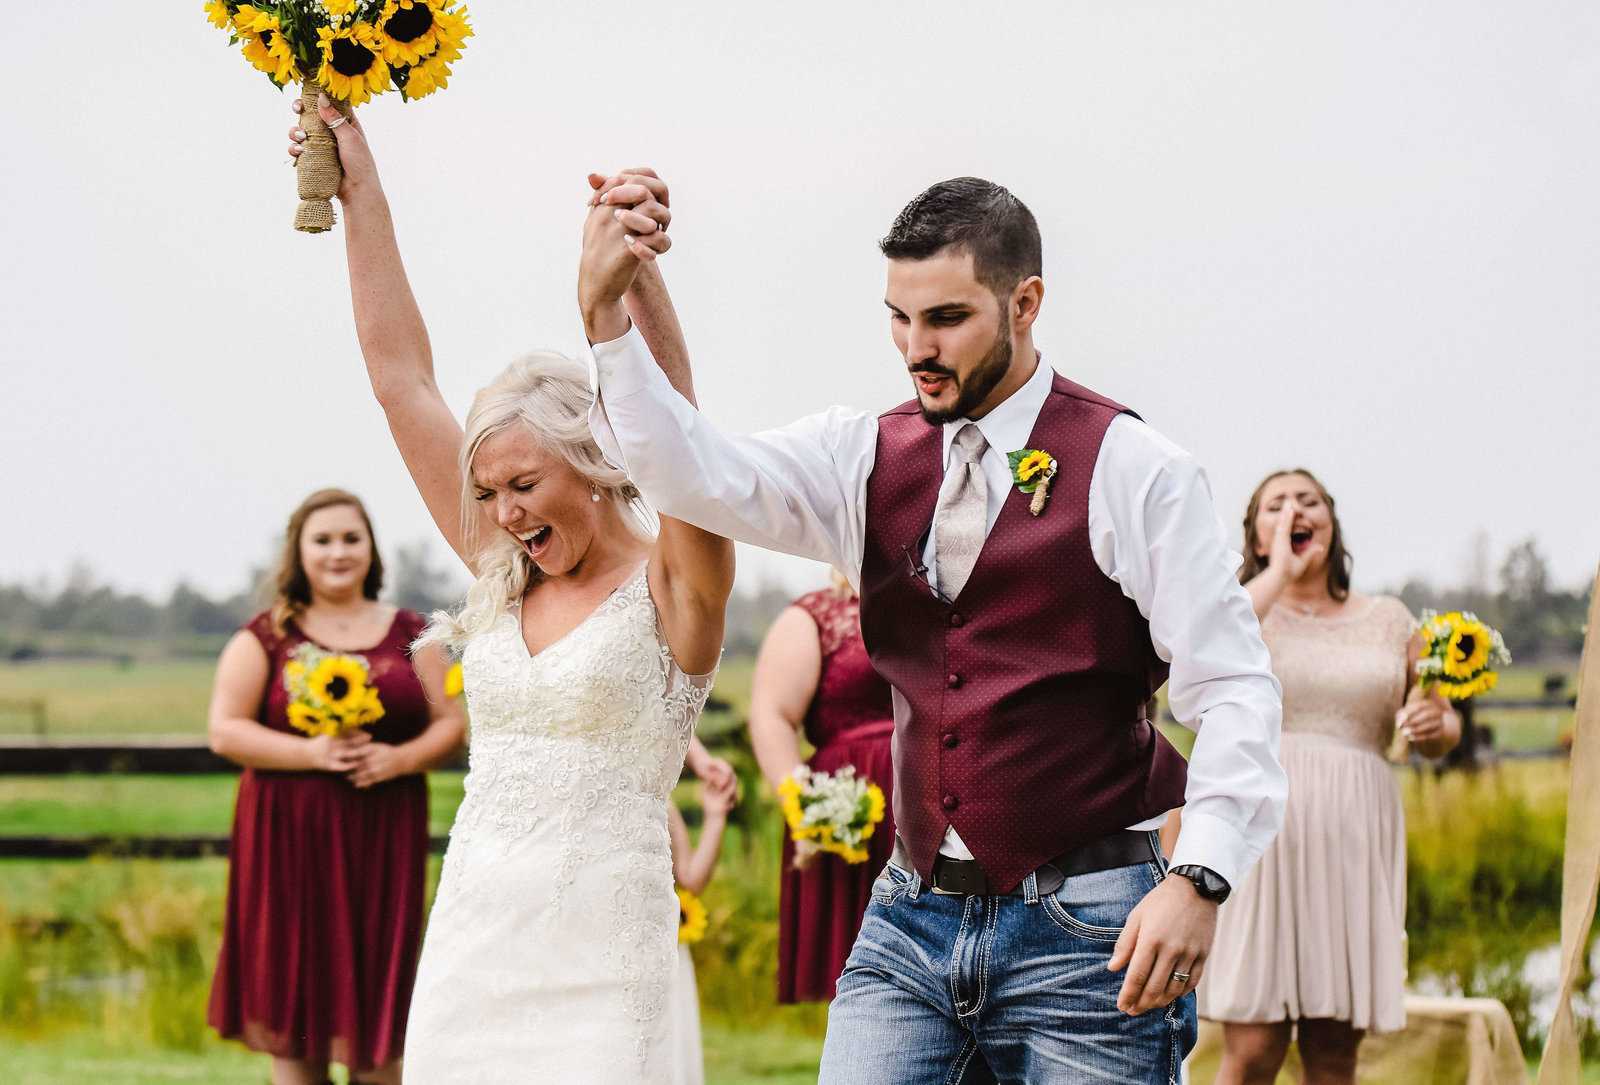 Lively summer wedding at Sky Hawk Ranch in Terrebonne, Oregon near Smith Rock State Park. Photo by Lexsey Lanzotti, AKA Zotti